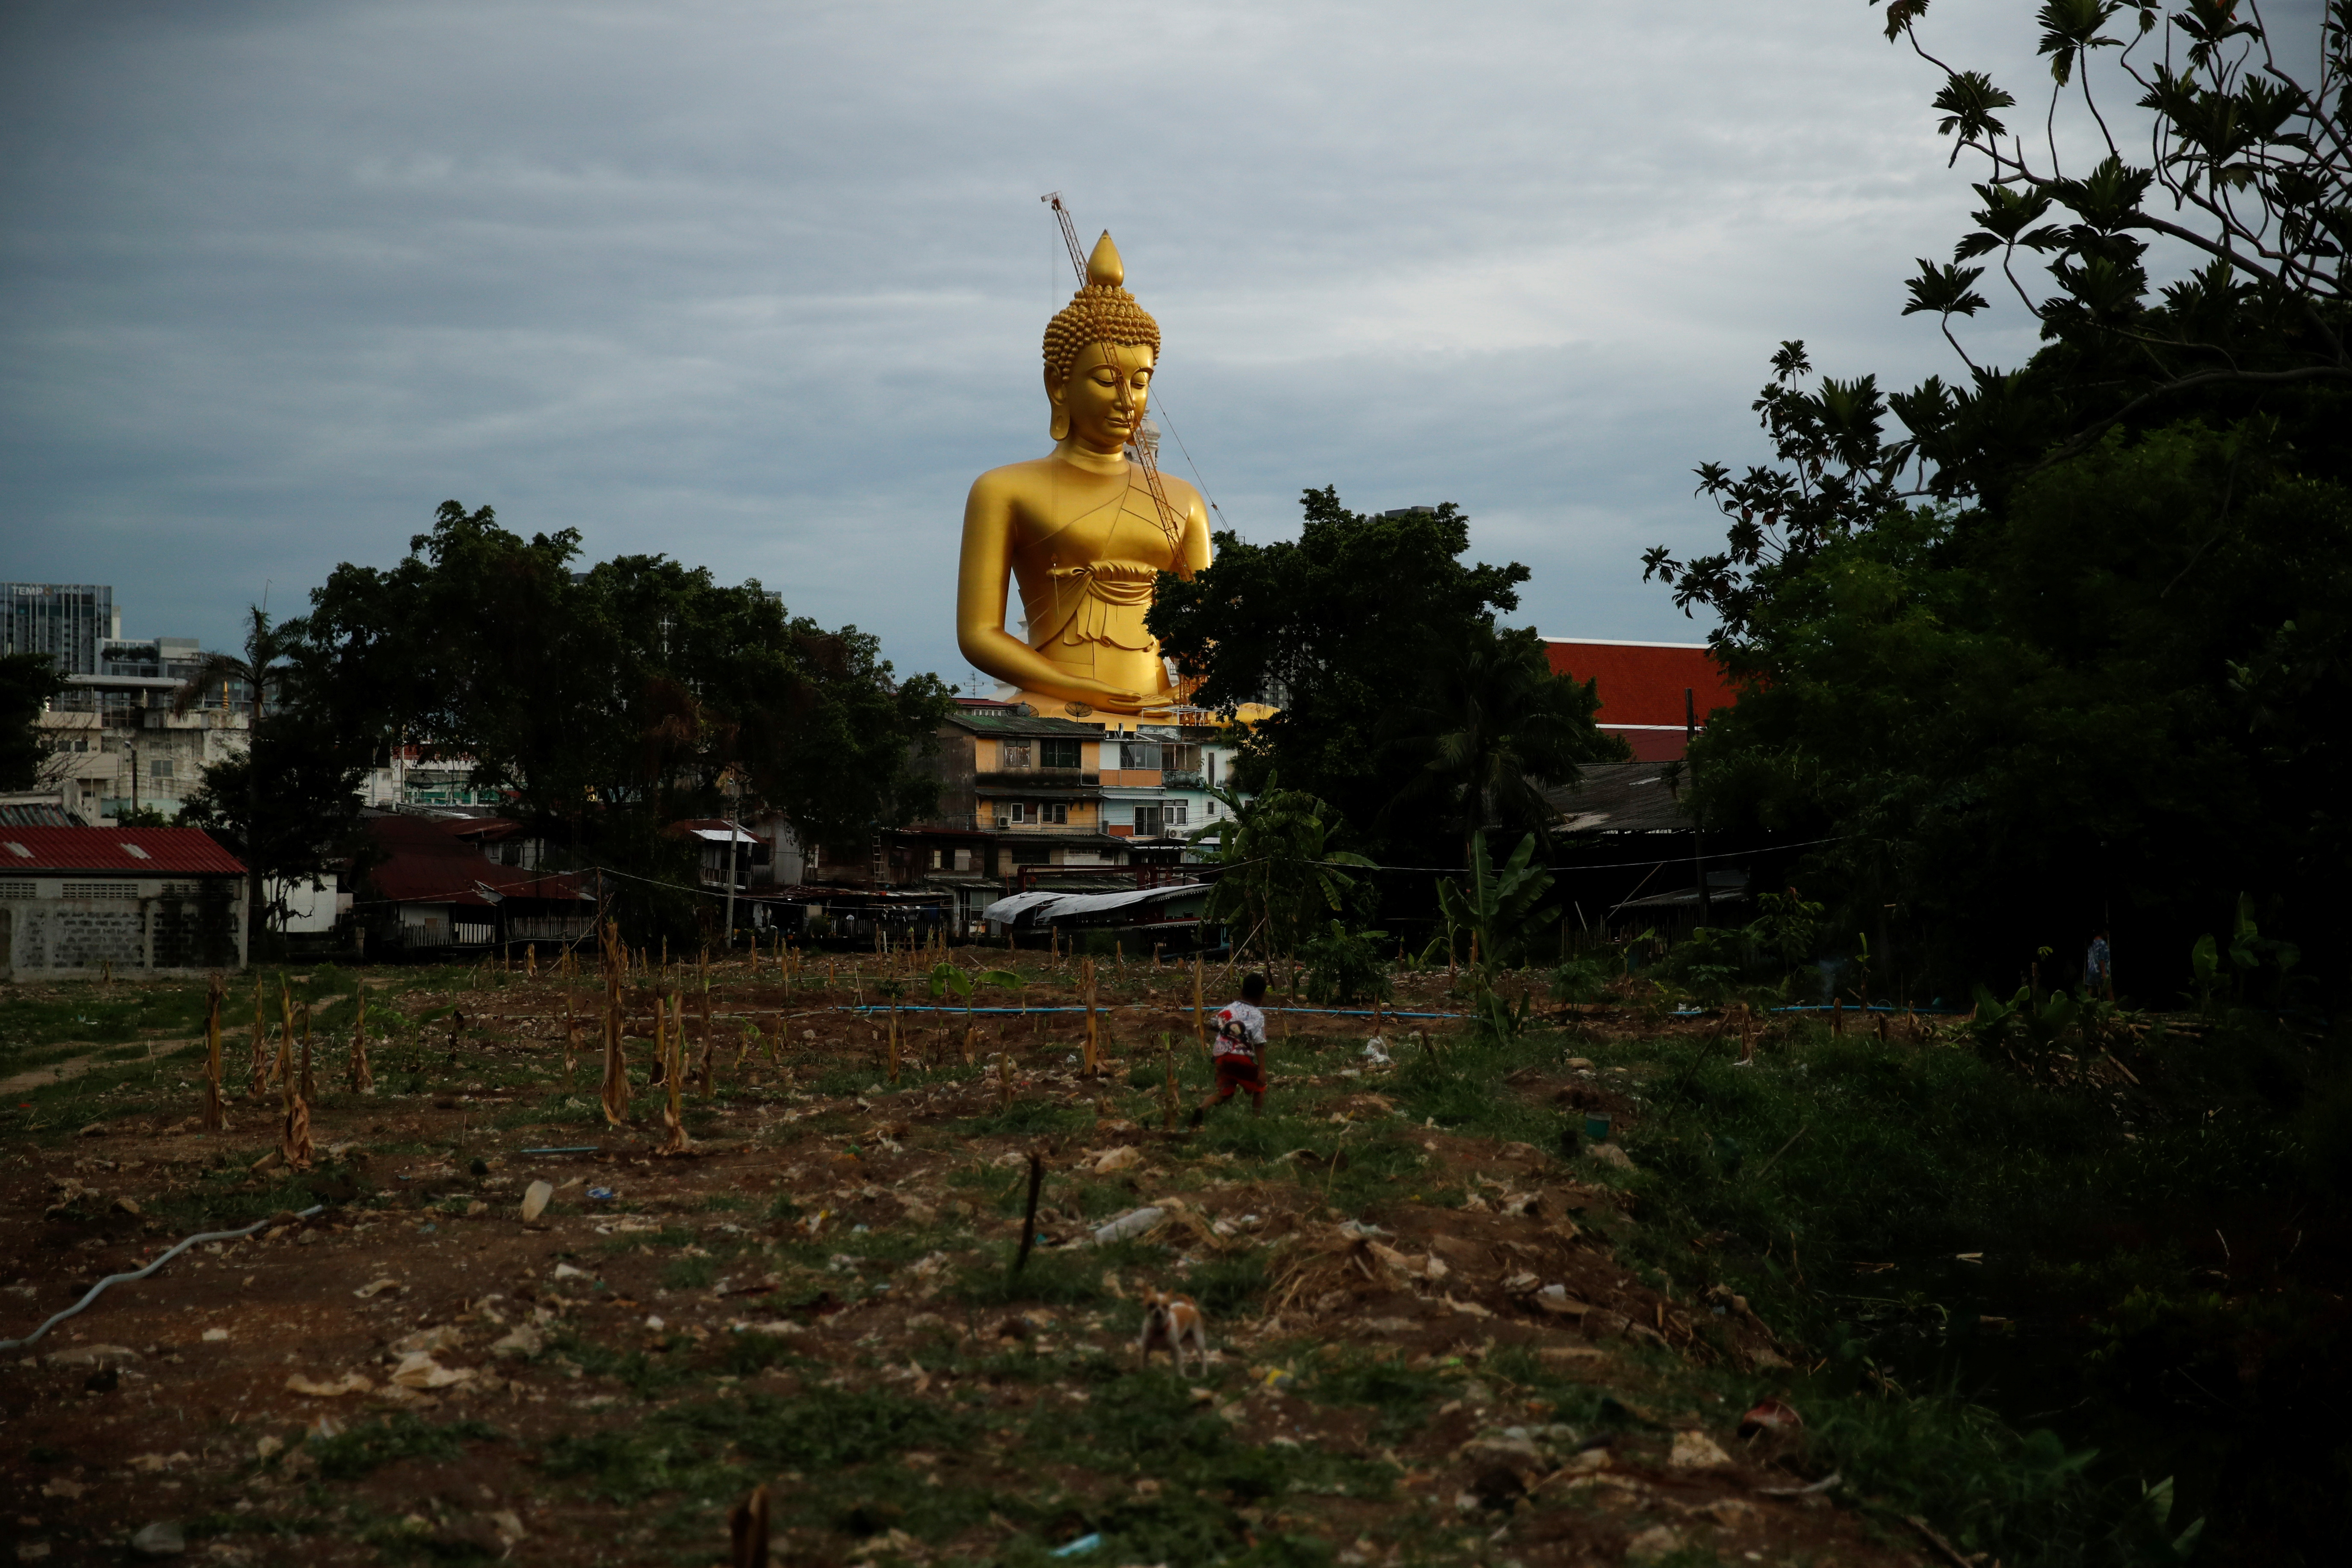 The giant Buddha statue of Wat Paknam Phasi Charoen temple is seen behind a neglected land in Bangkok, Thailand, June 16, 2021. Picture taken June 16, 2021. REUTERS/Jorge Silva